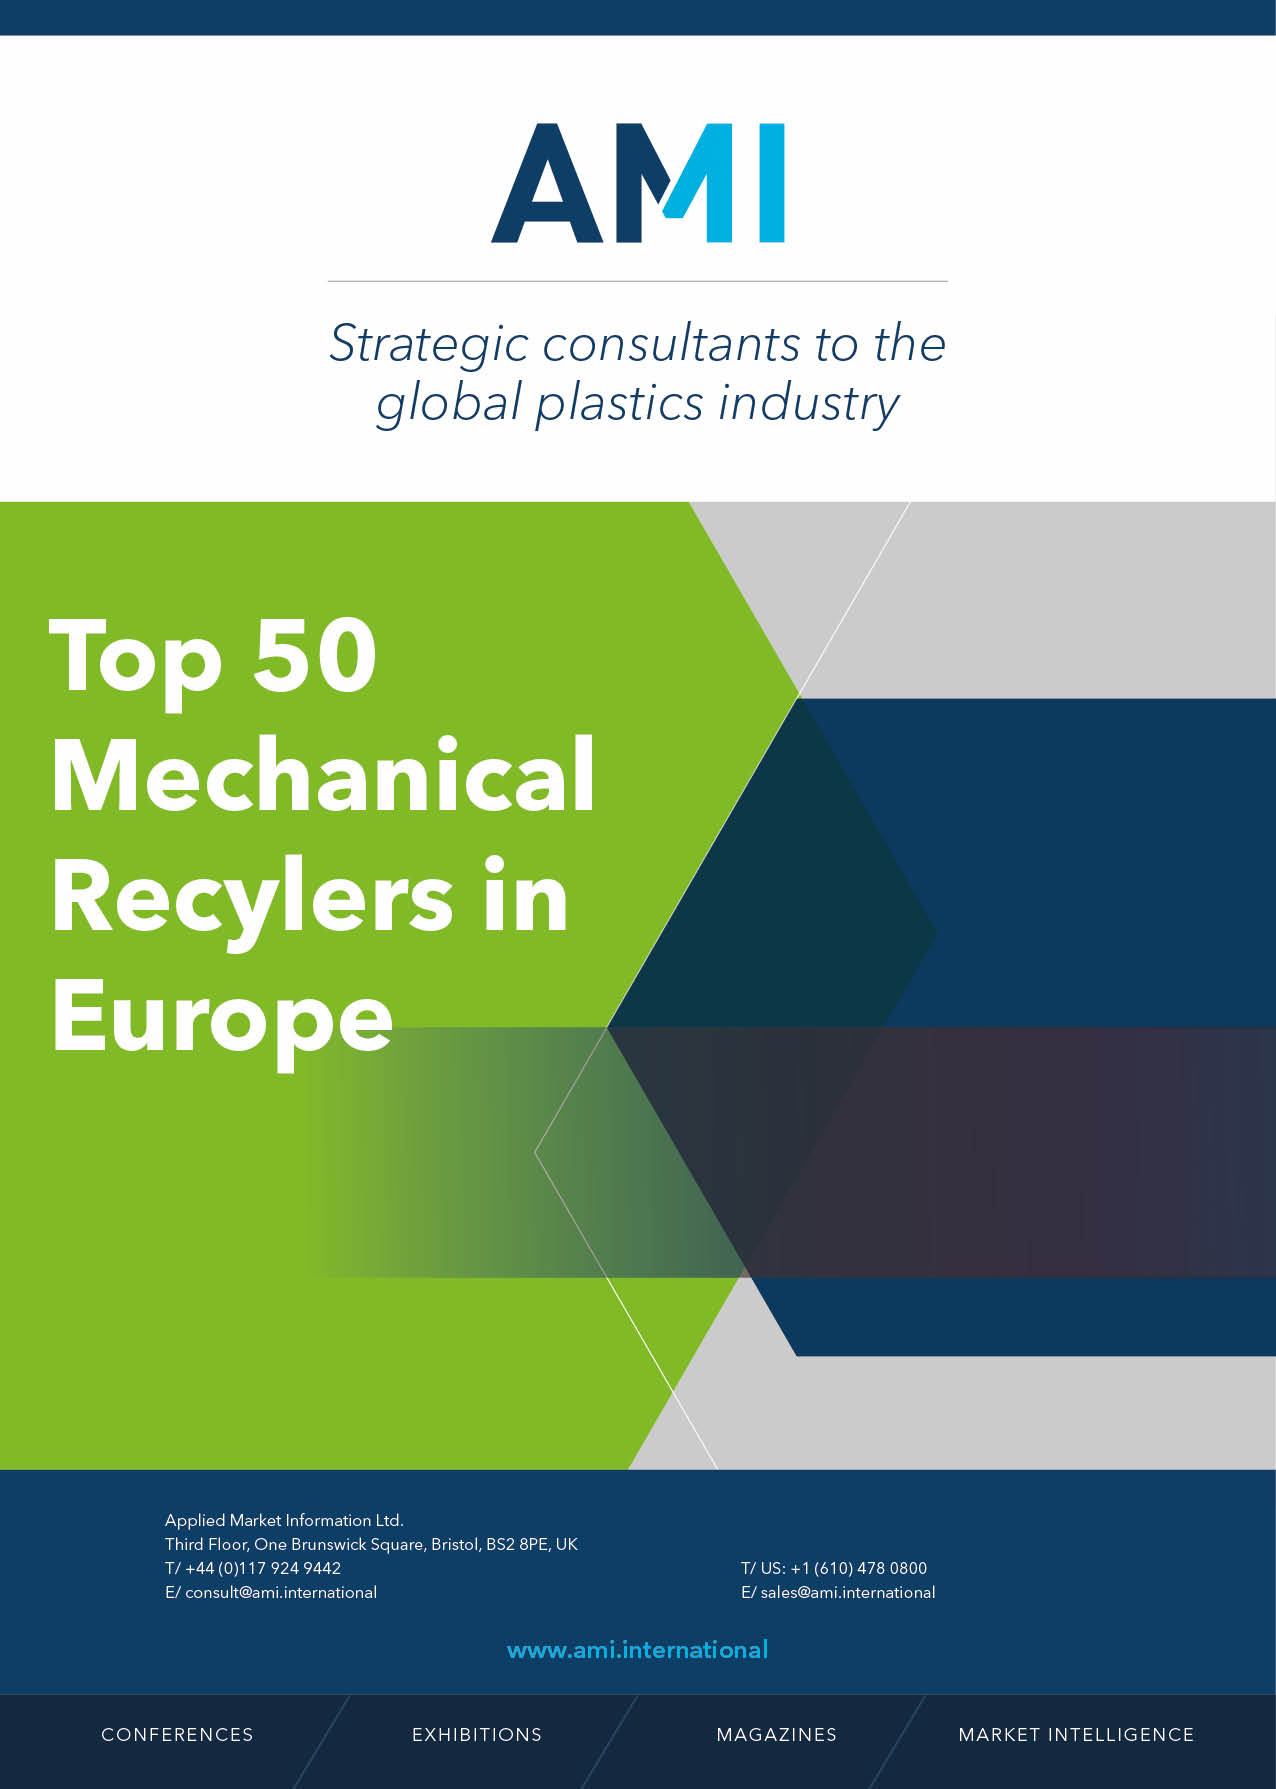 Top 50 Mechanical Recyclers in Europe 2020